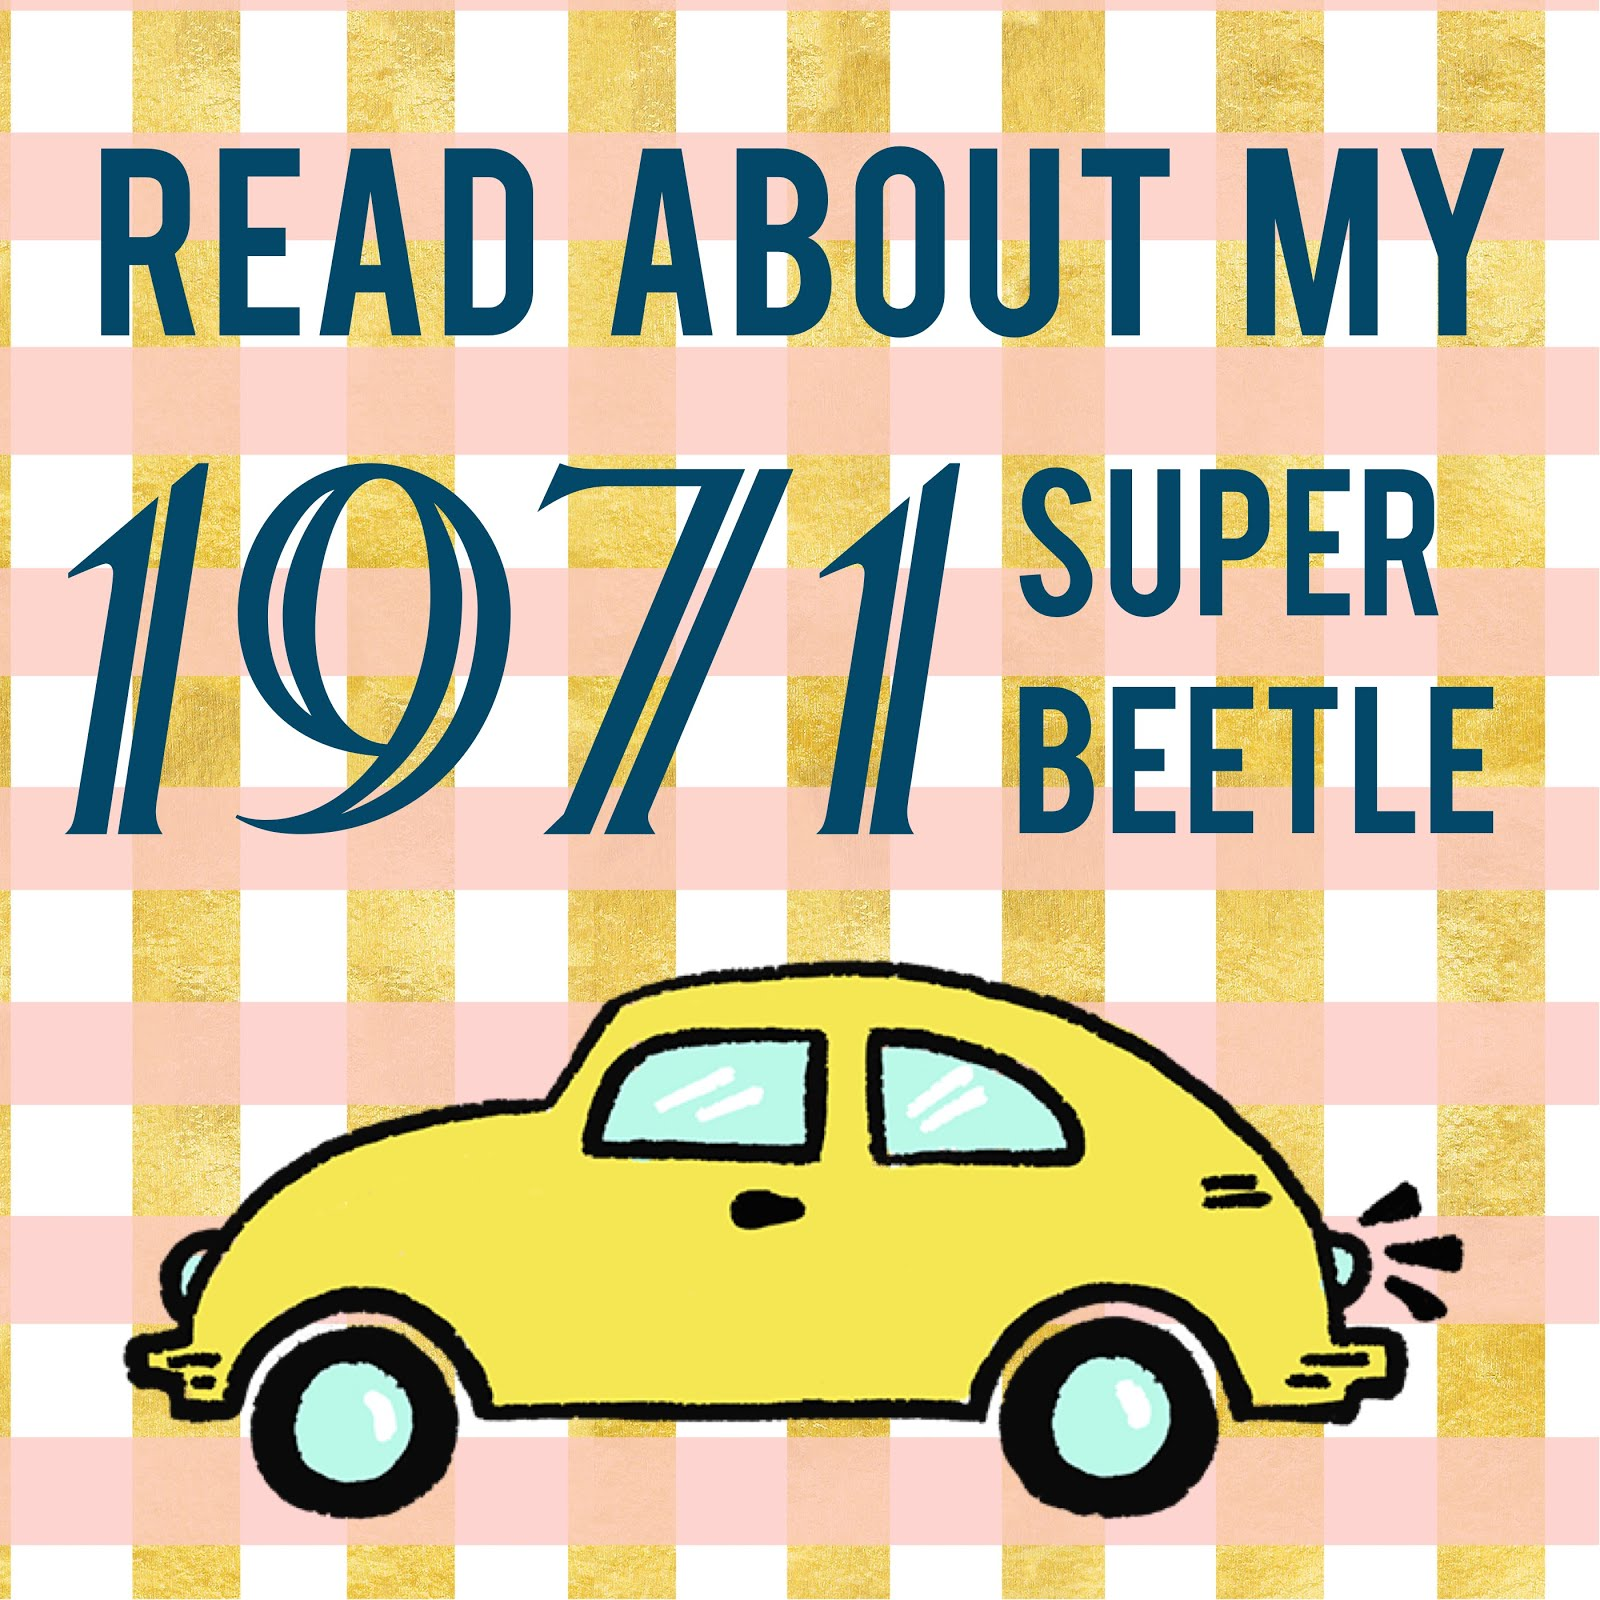 Check Out My Convertible Bug!